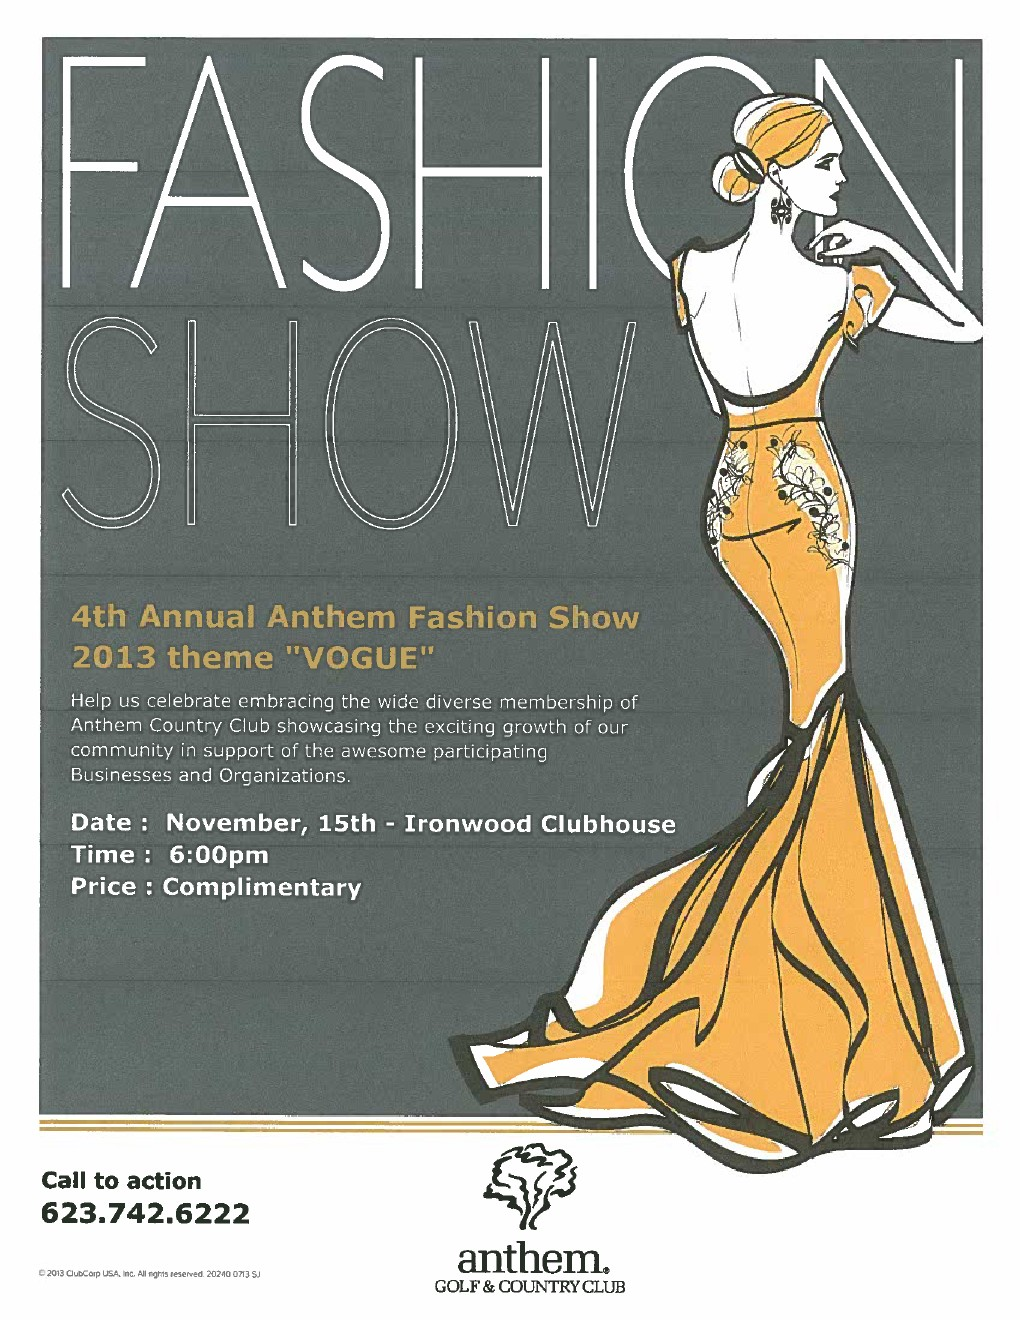 4th Annual Anthem Fashion Show All About Anthem